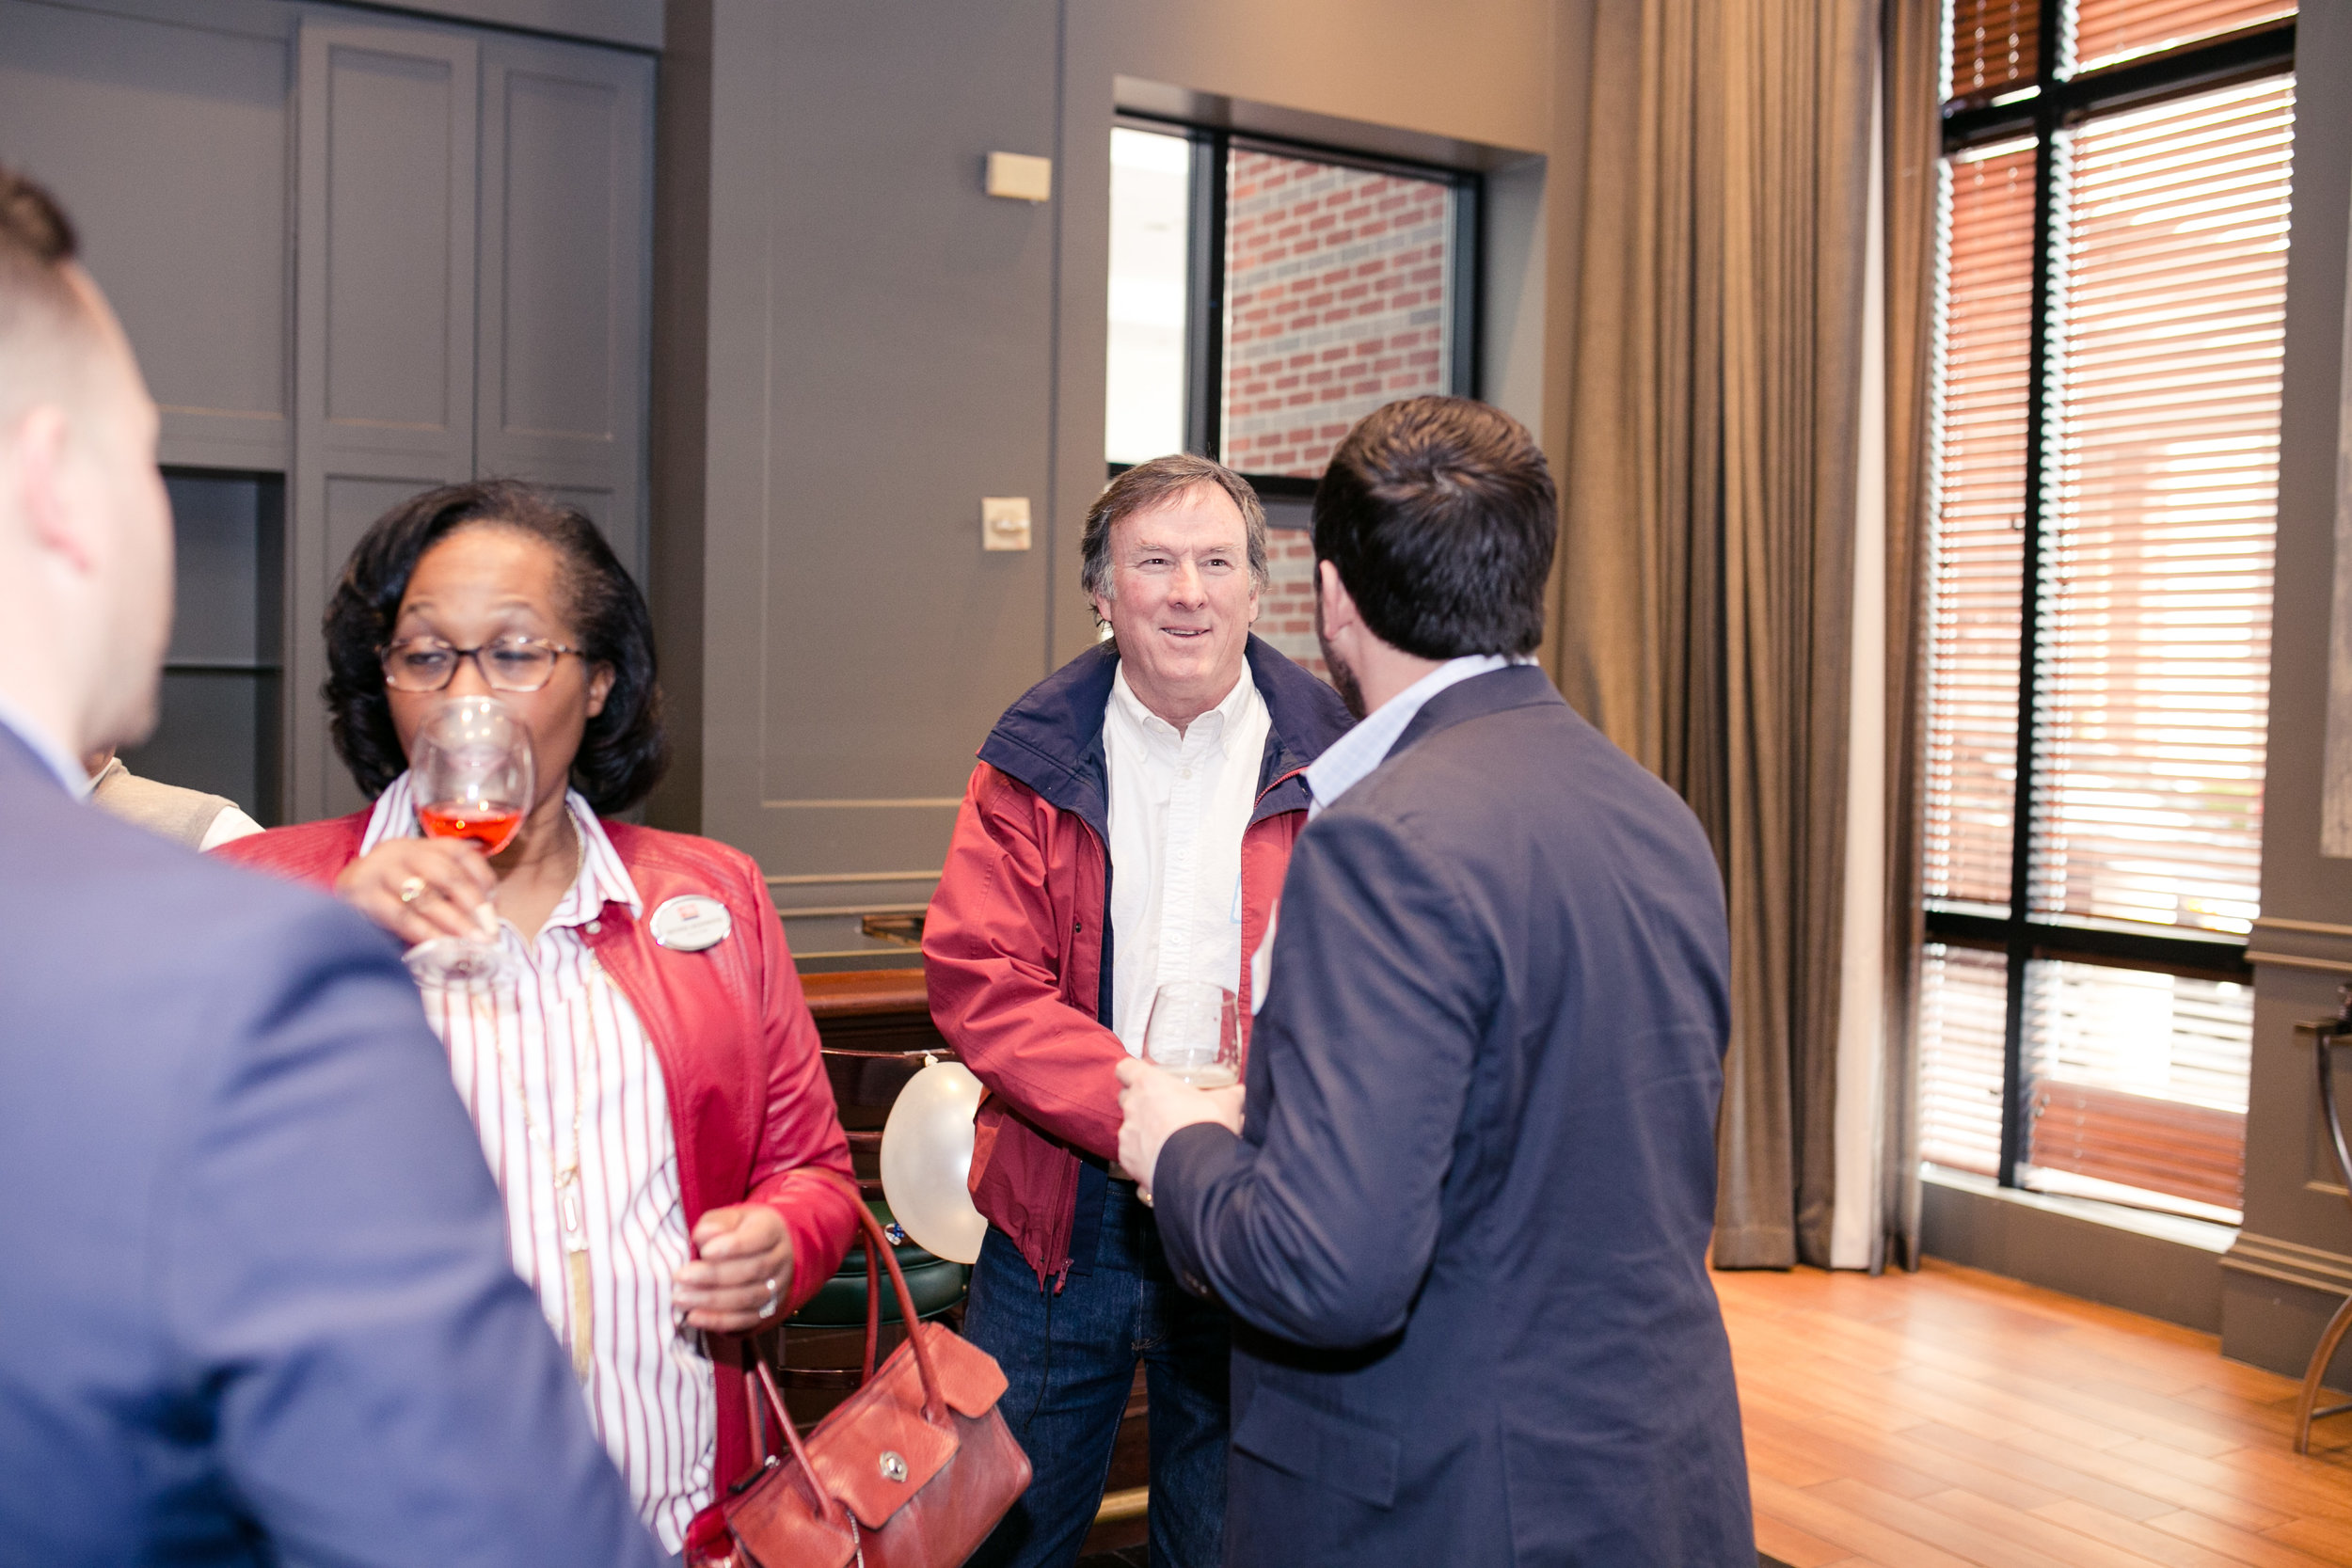 Fellowship_Marriott_Baltimore-0106.jpg